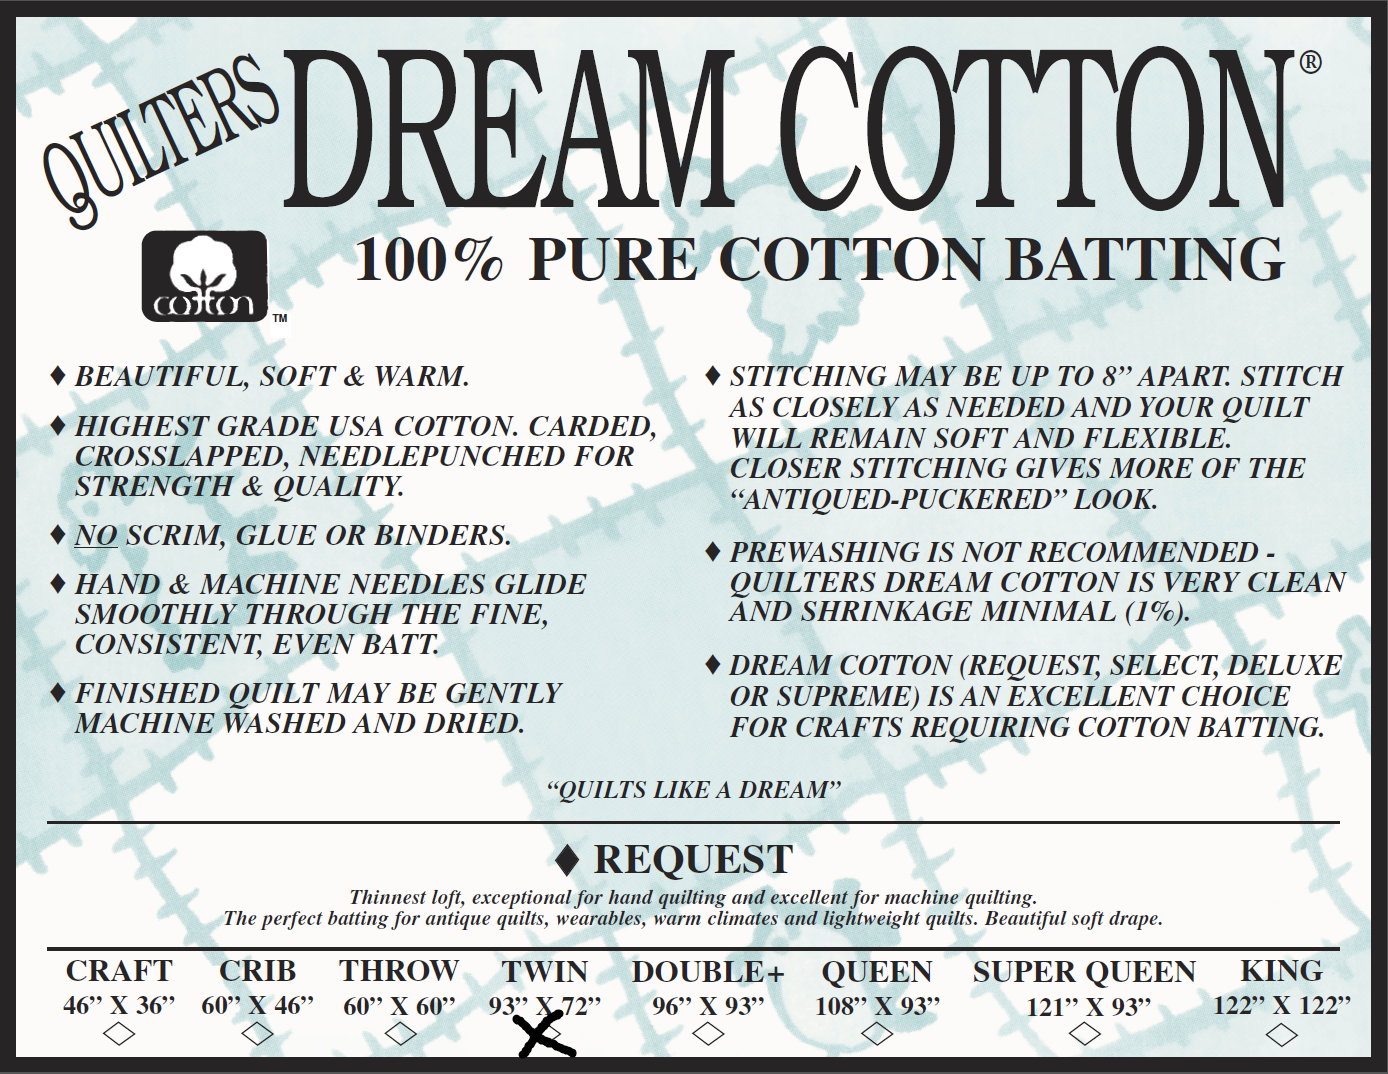 Request Twin 93 x 72 Quilters Dream Cotton